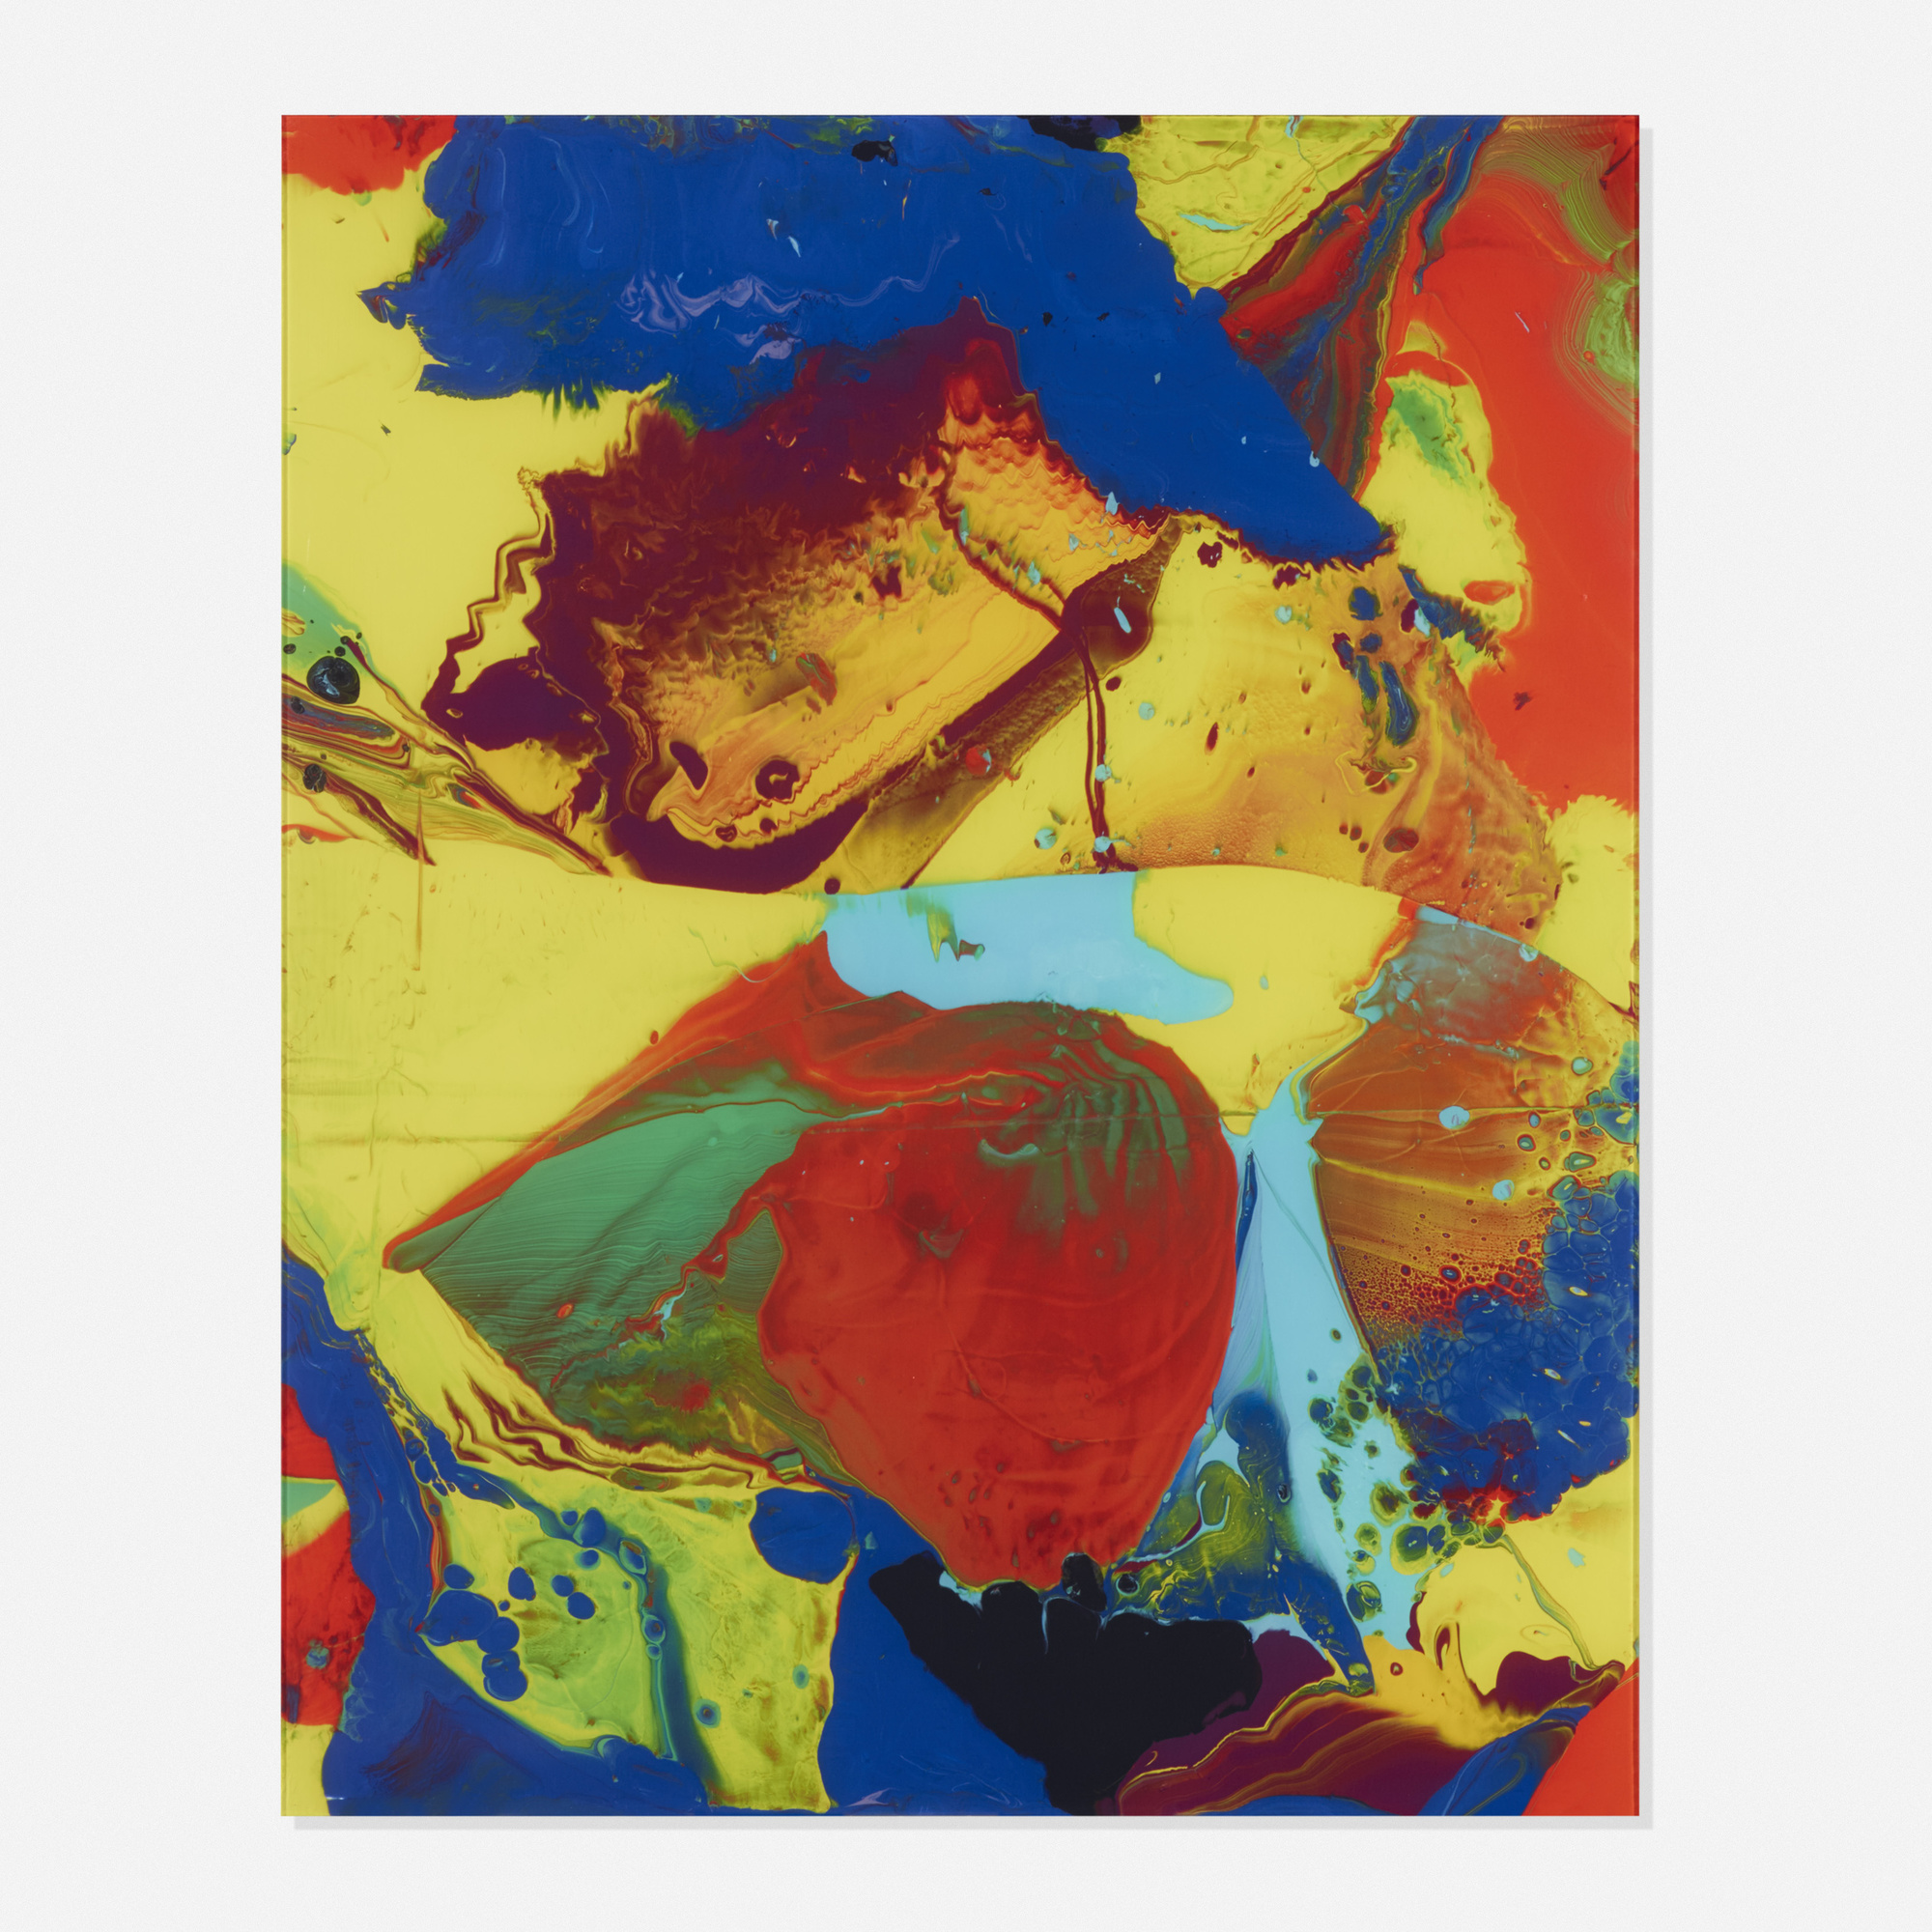 167: Gerhard Richter / BAGDAD (1 of 1)